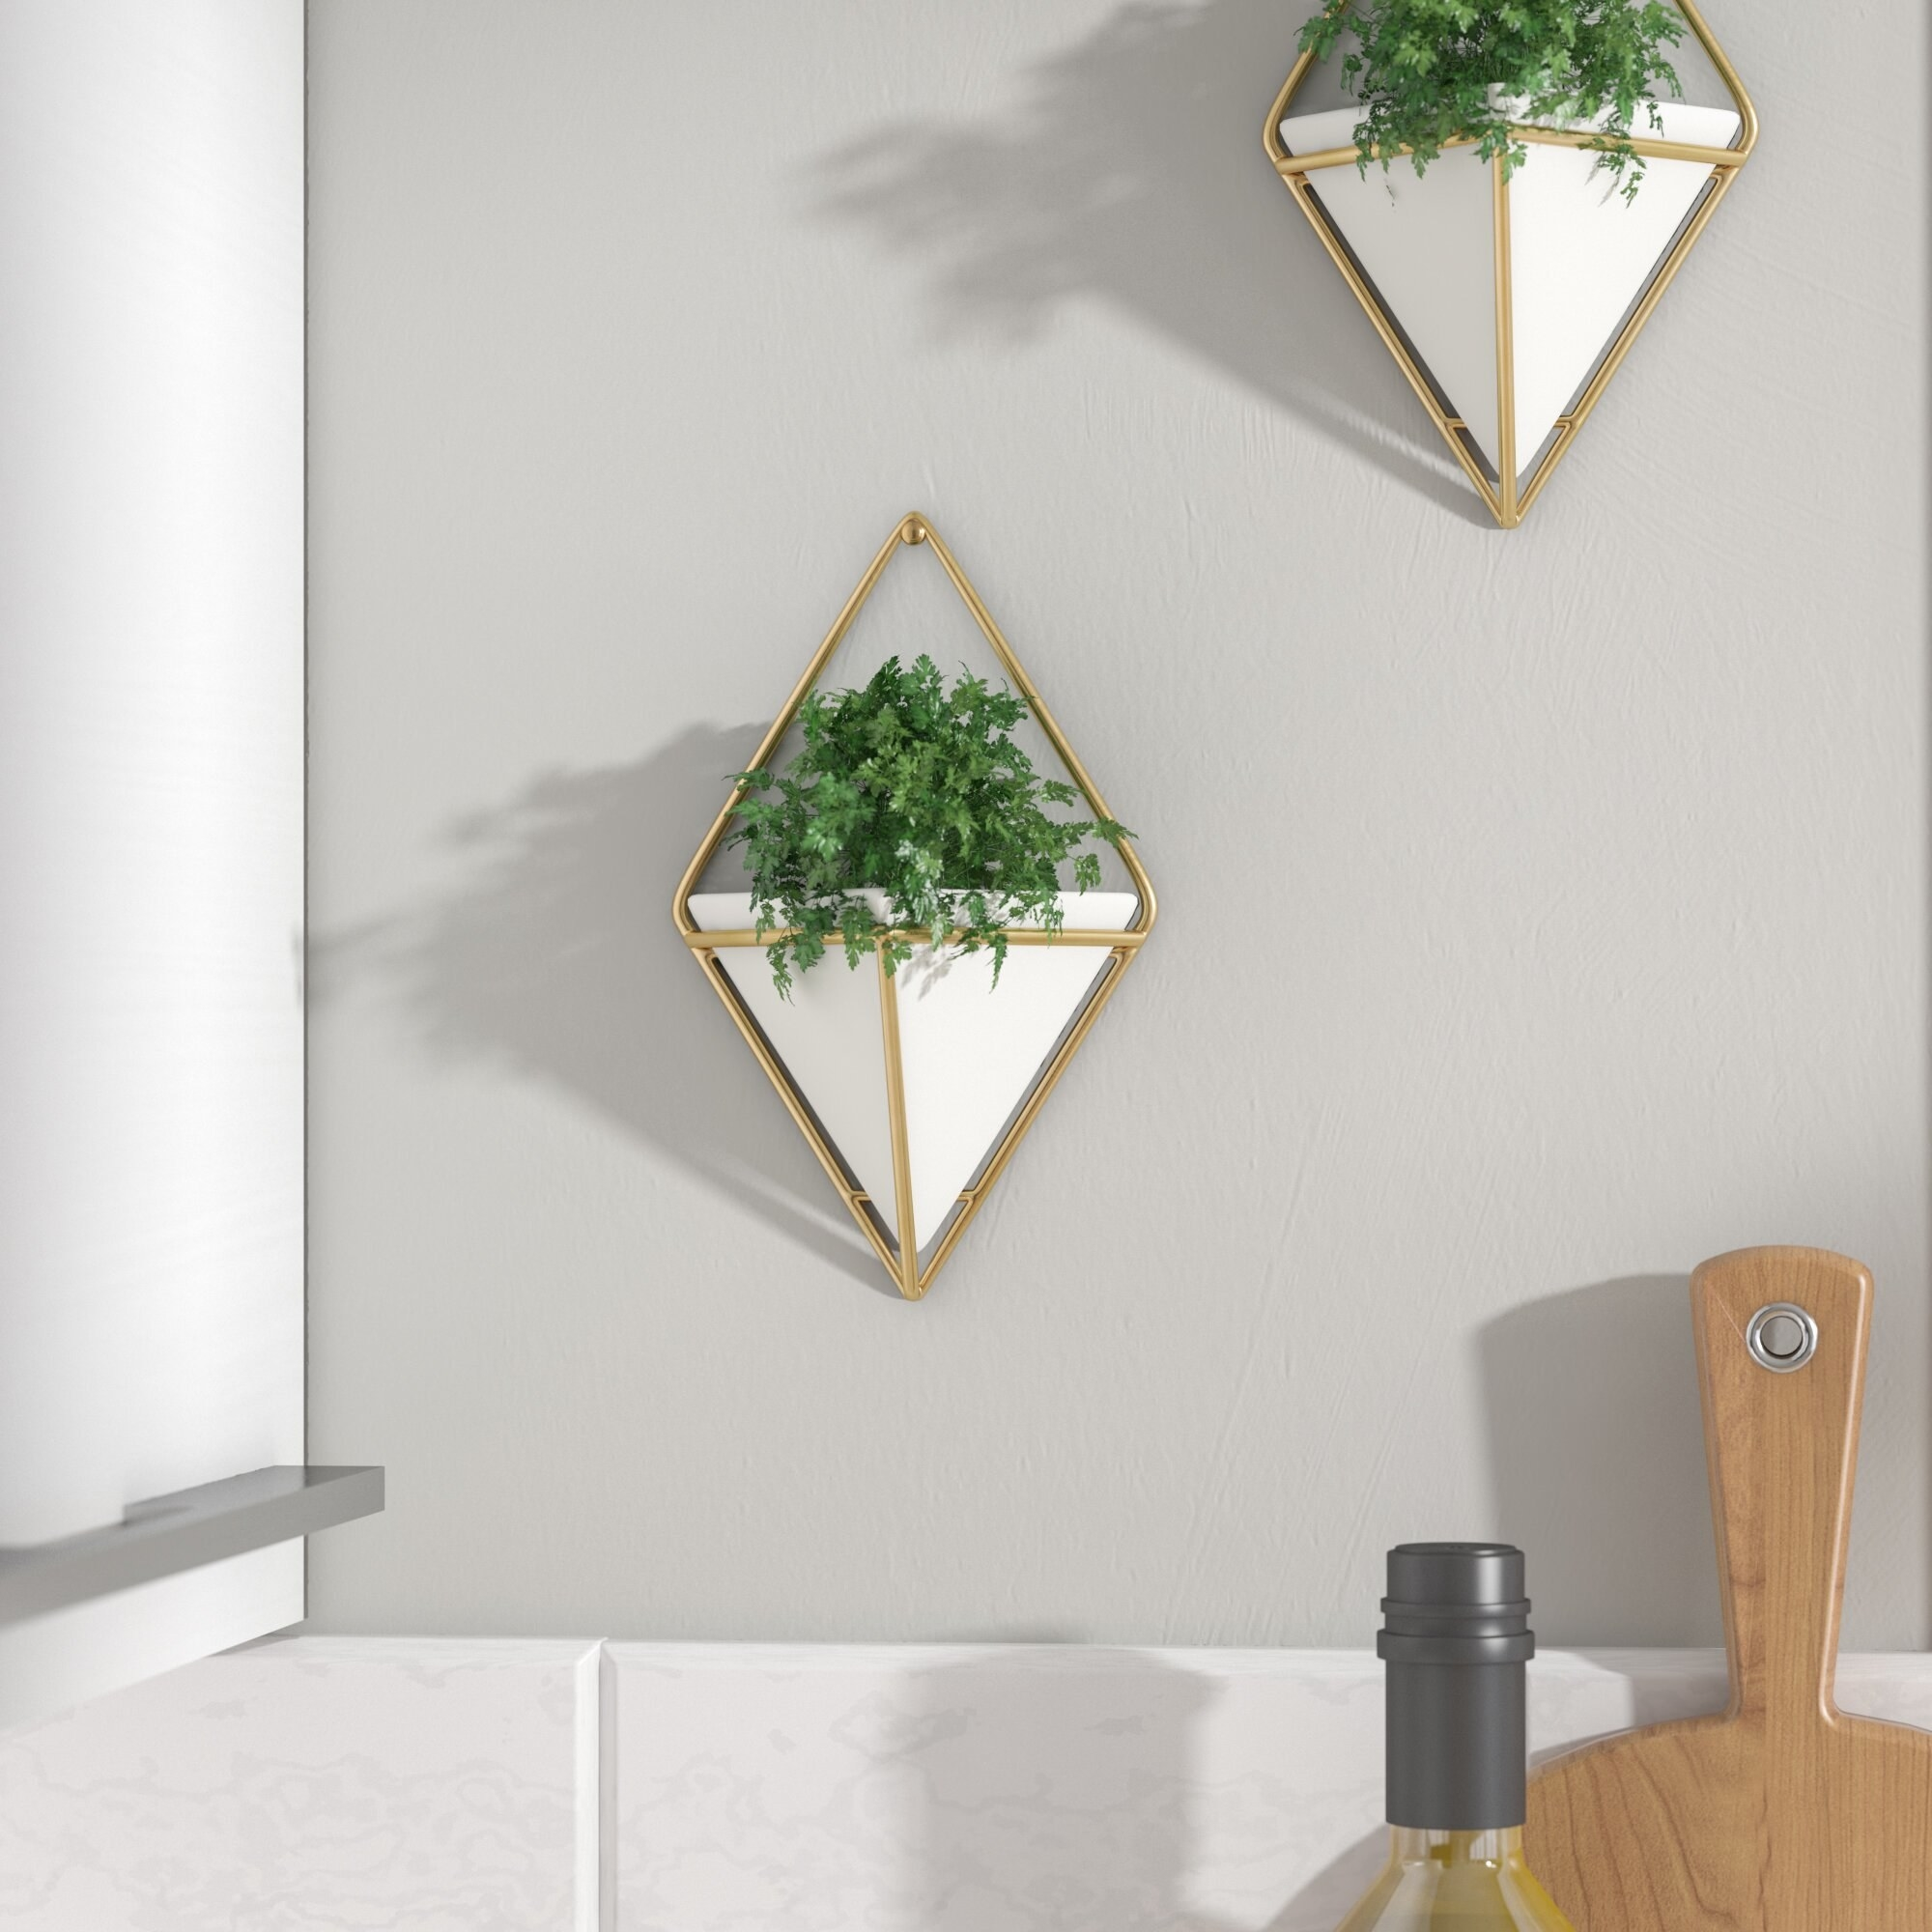 Two white triangular planters hung by gold diamond-shaped frames